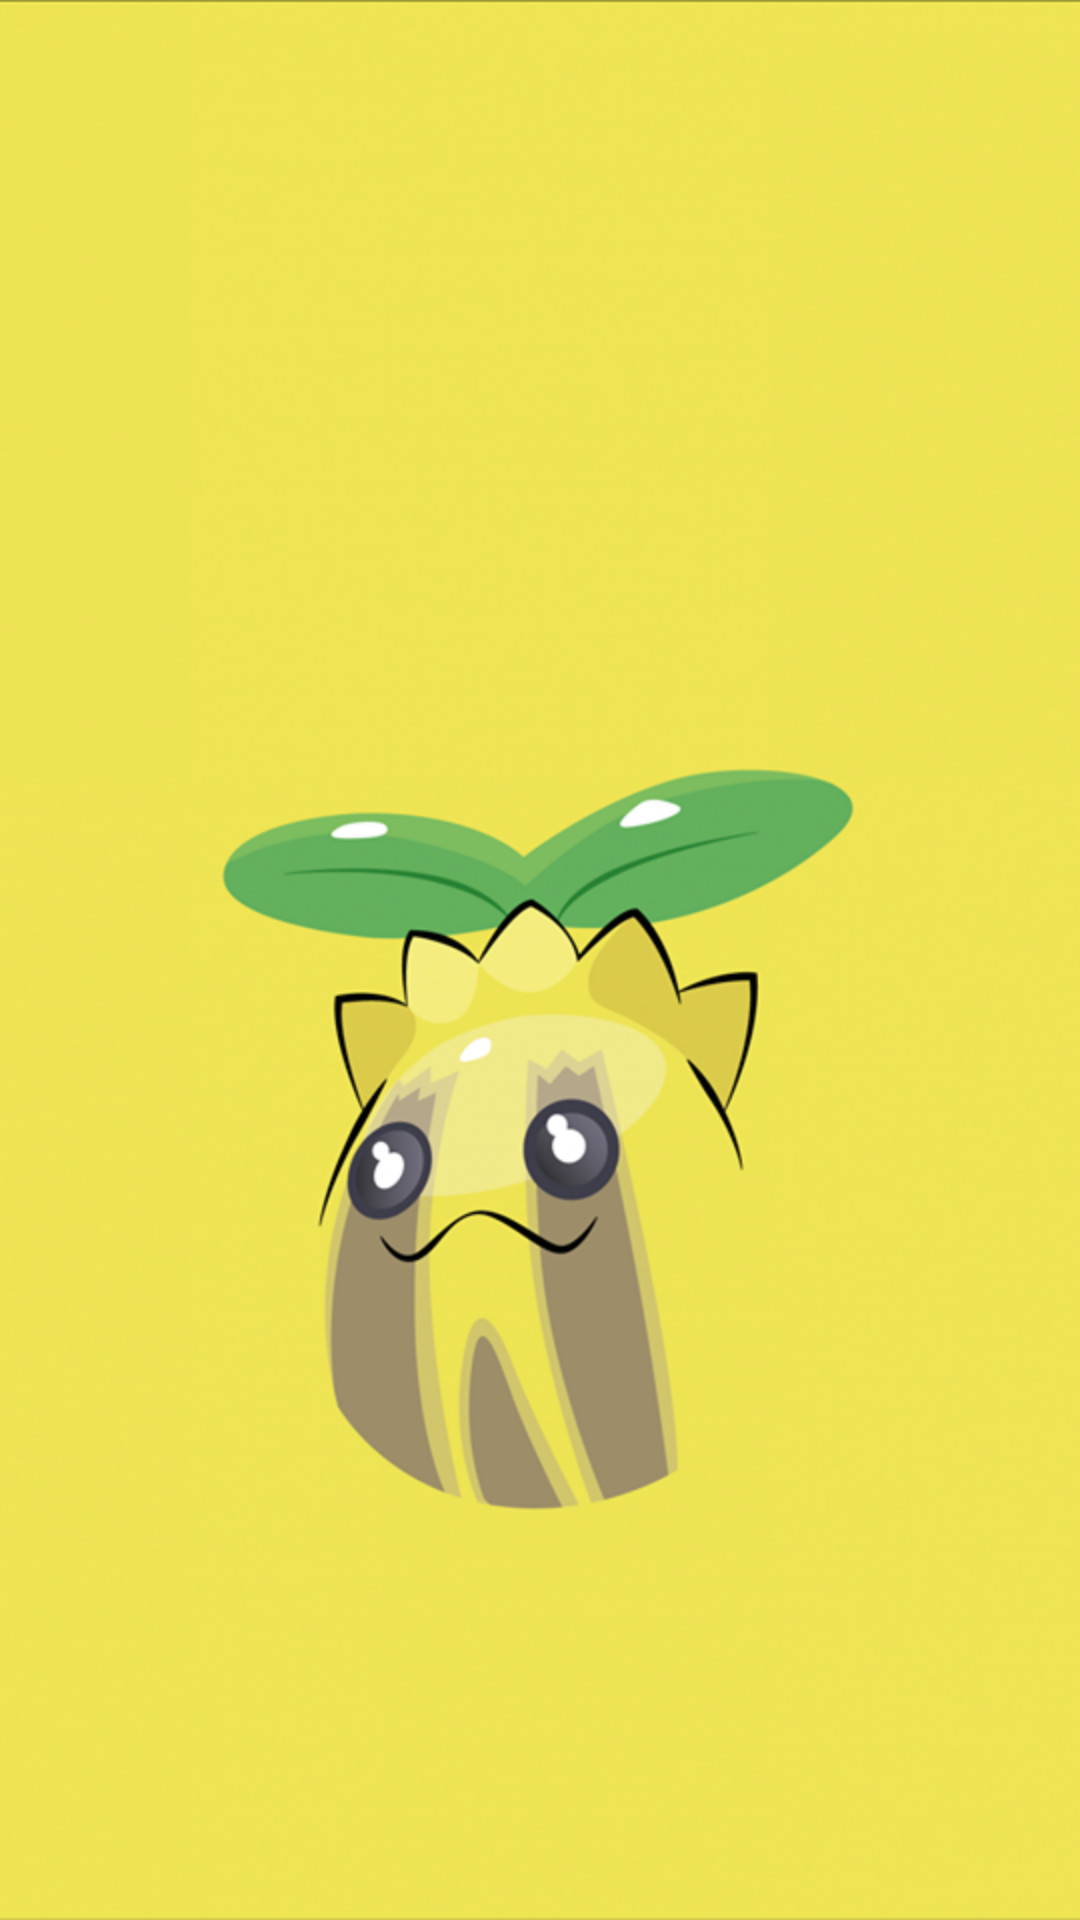 Res: 1080x1920, Sunkern - Tap to see more of the cutest Pokemon wallpapers! - @mobile9